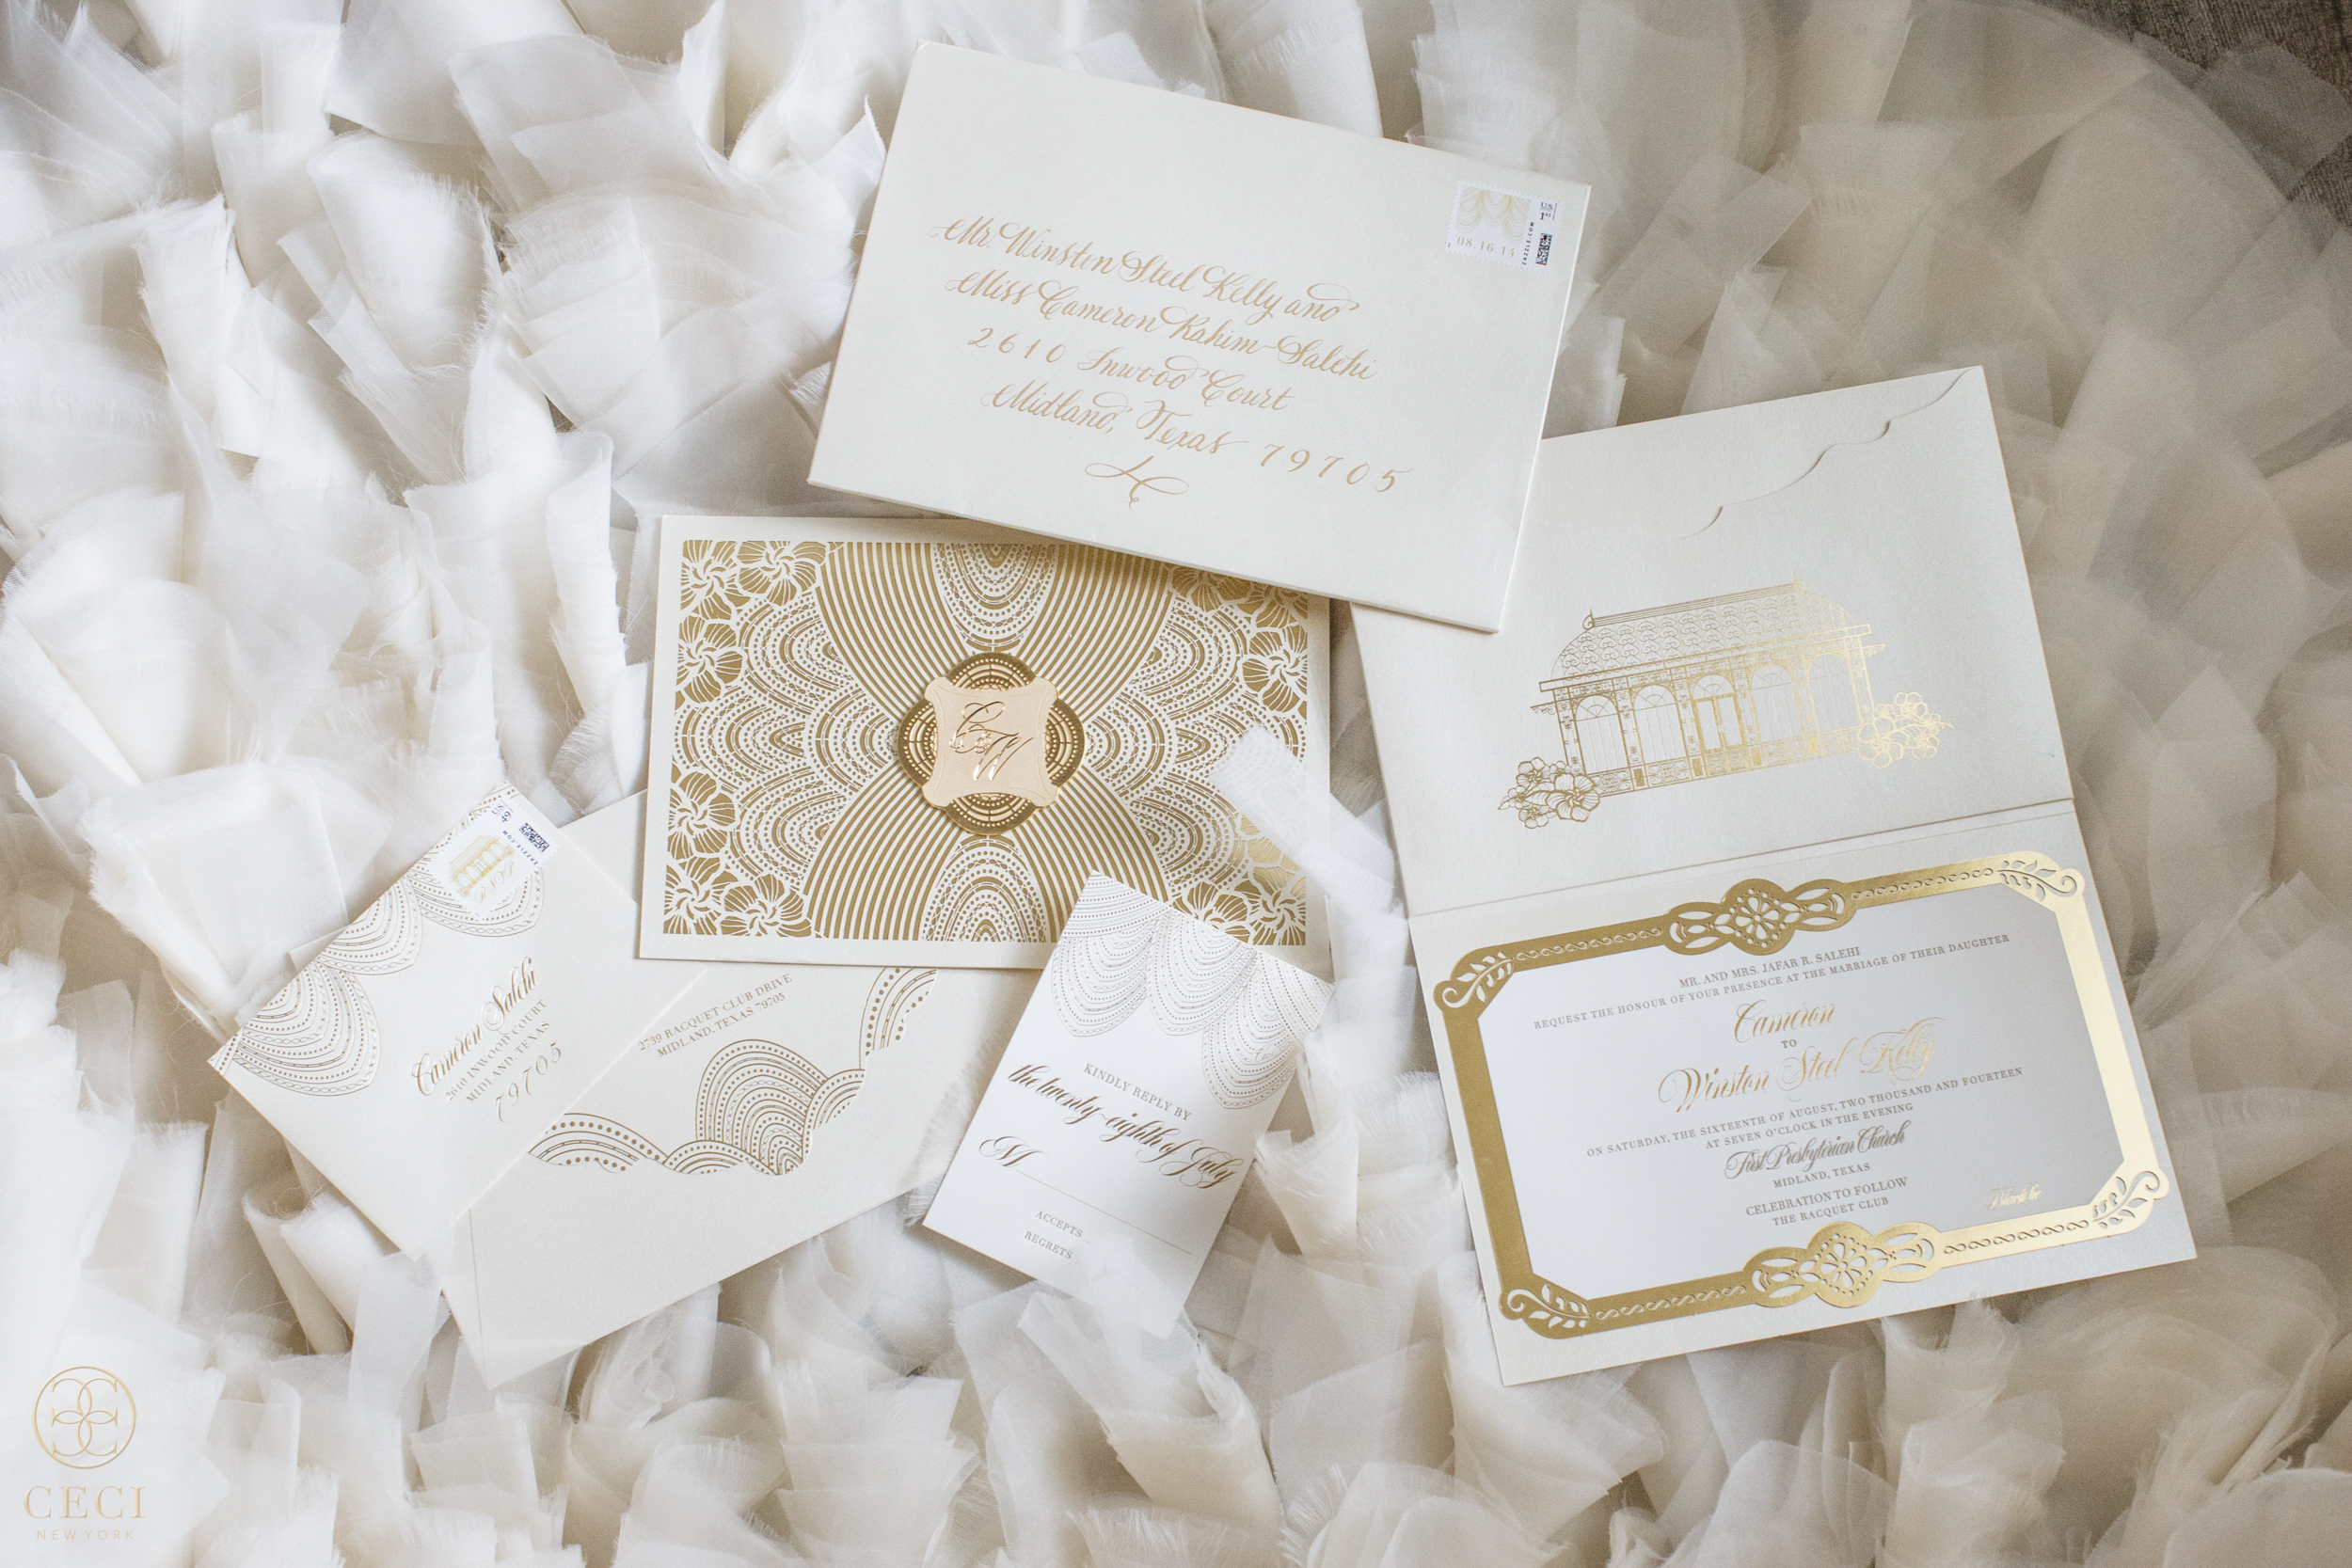 gold_deco_luxe_lavish_wedding_couture_luxury_invitation_design_lasercut_foil_glam_gilded_modern_sophisticated_midland_texas_invitations_suite-3.jpg